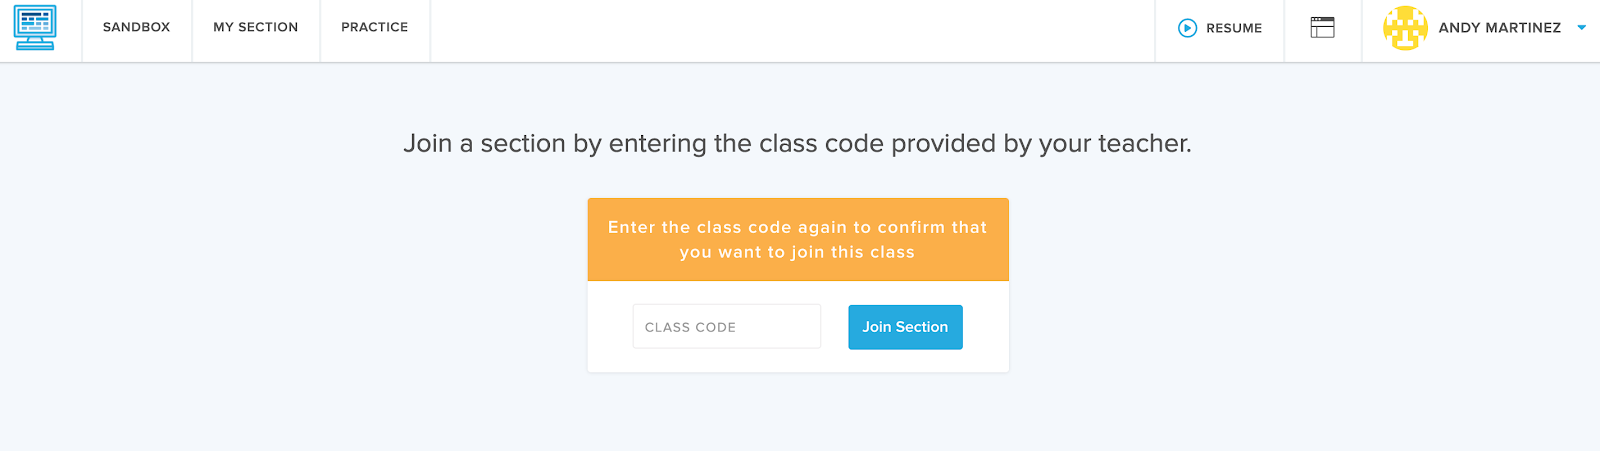 Students see another prompt box asking for a join code if they already have an account and are joining additional sections